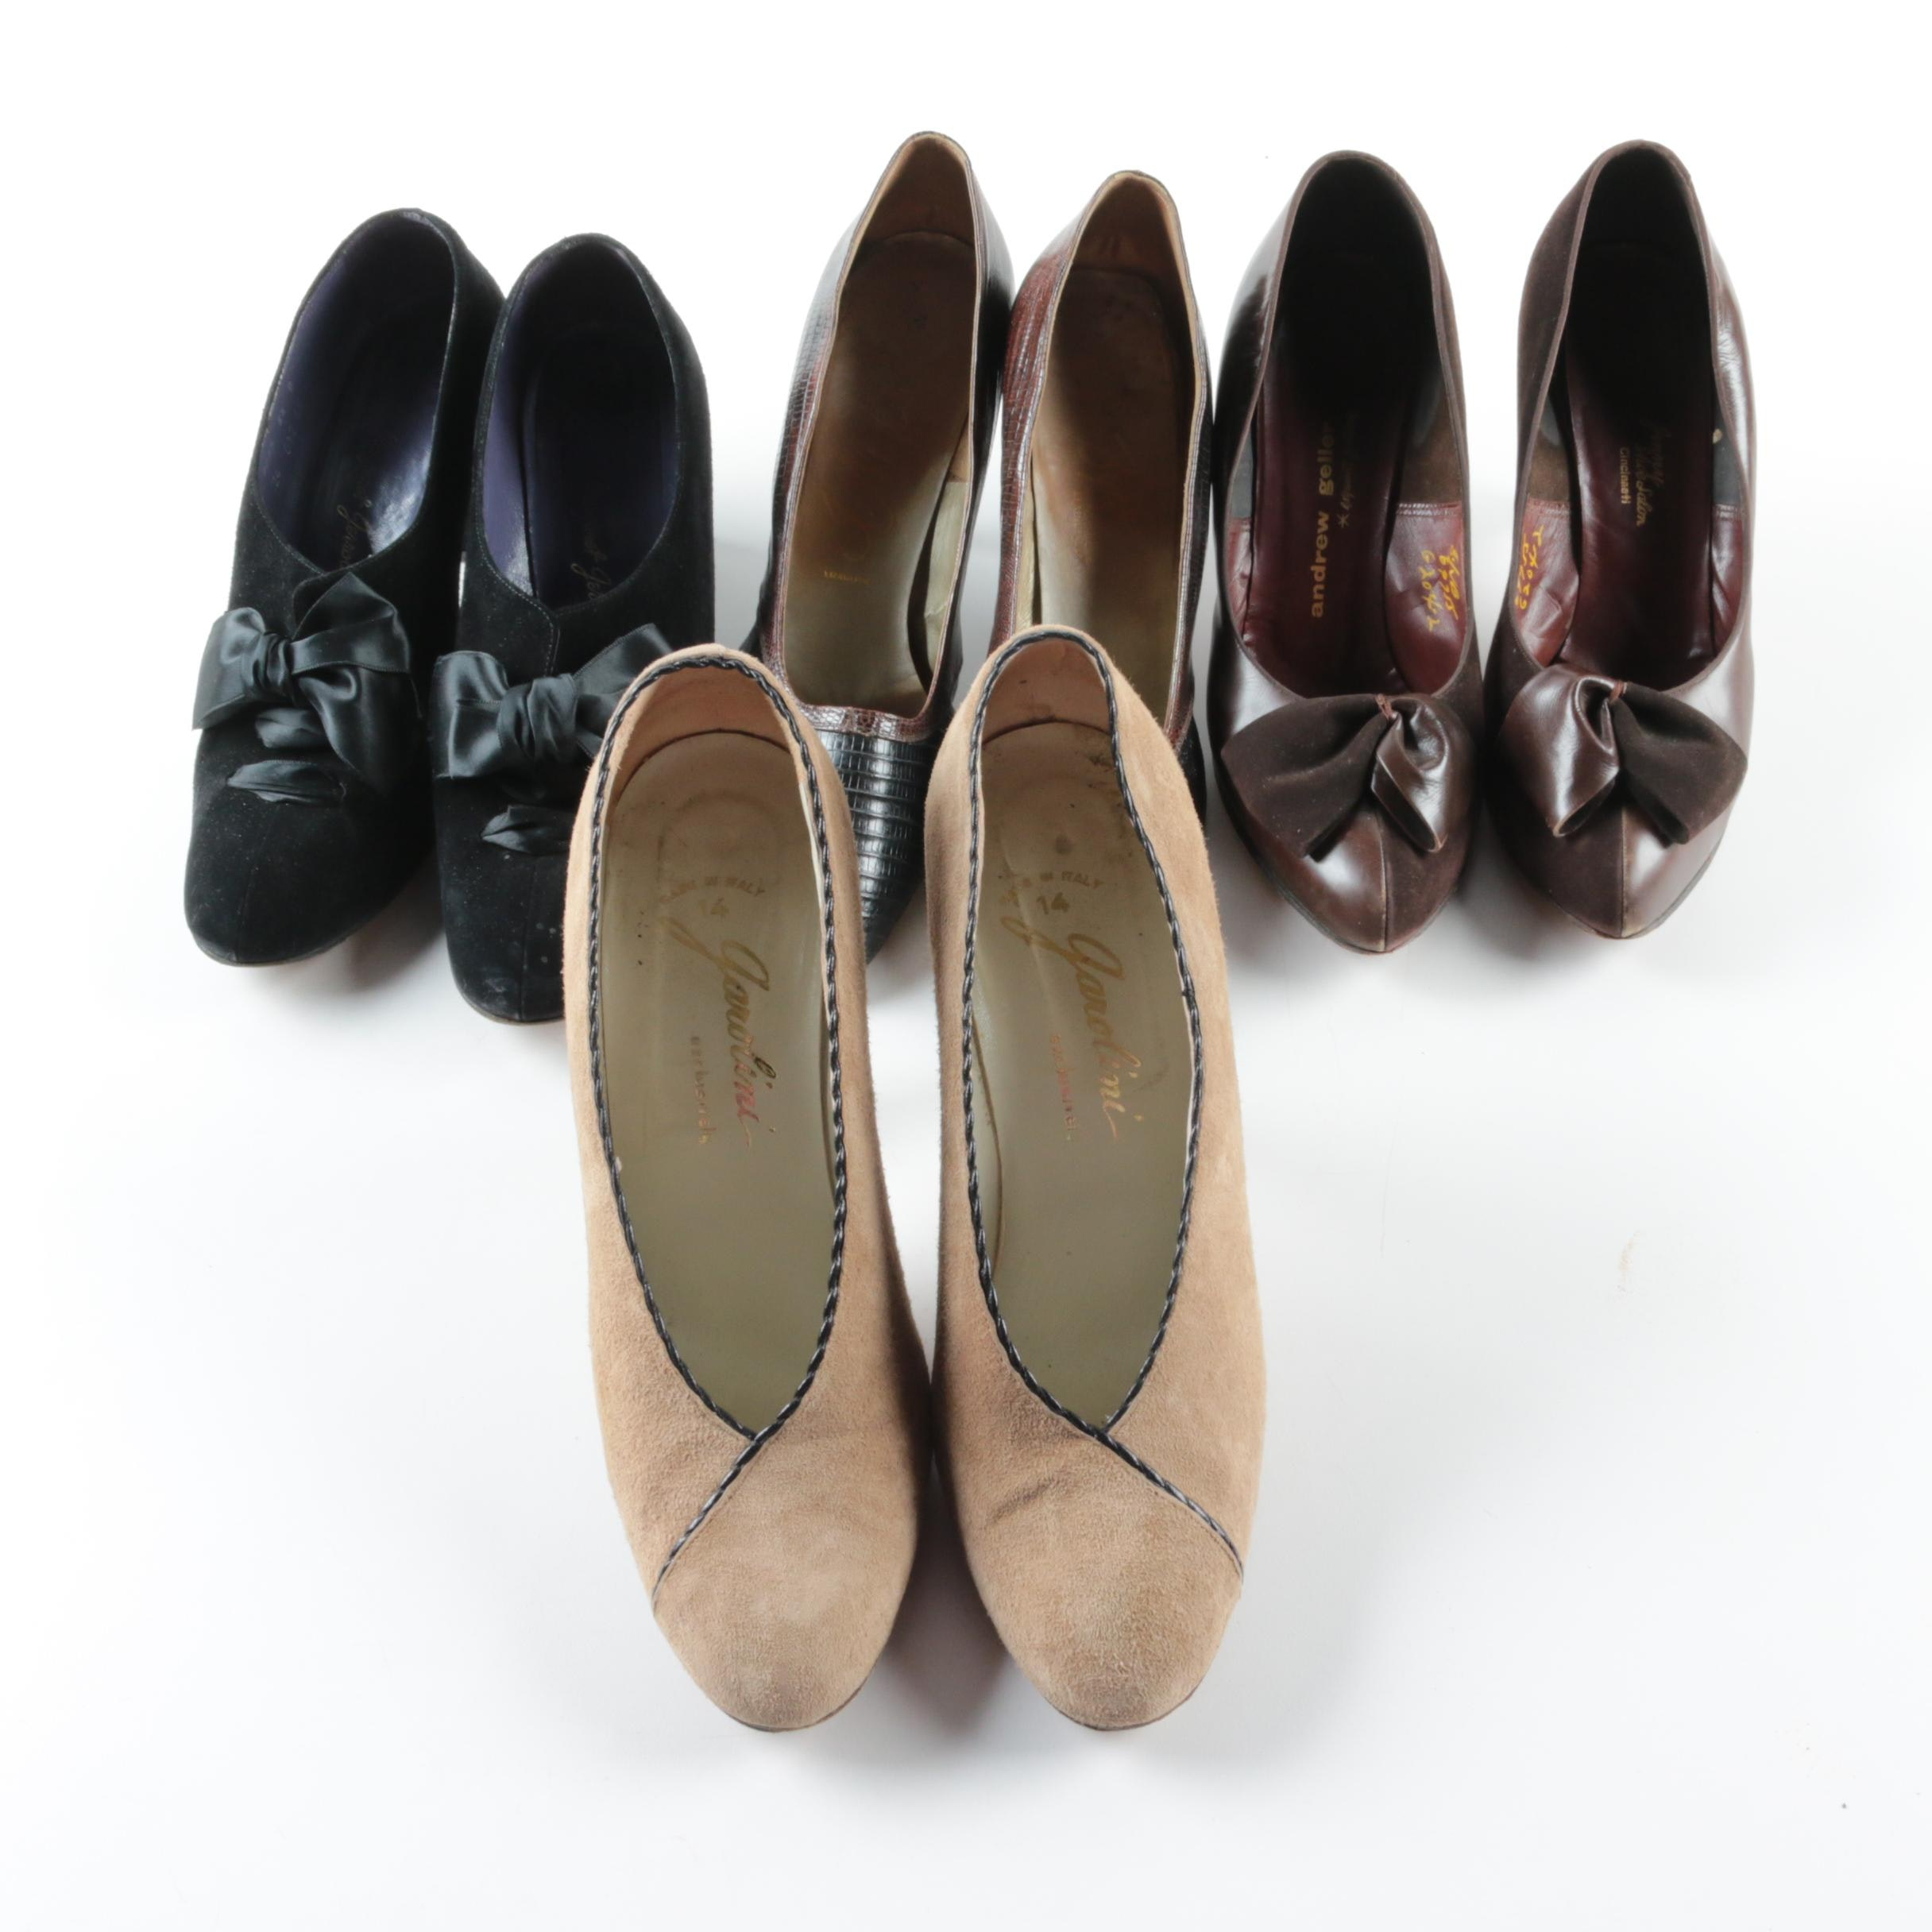 Circa 1950s Vintage High Heel Pumps Including Margaret Jerrold